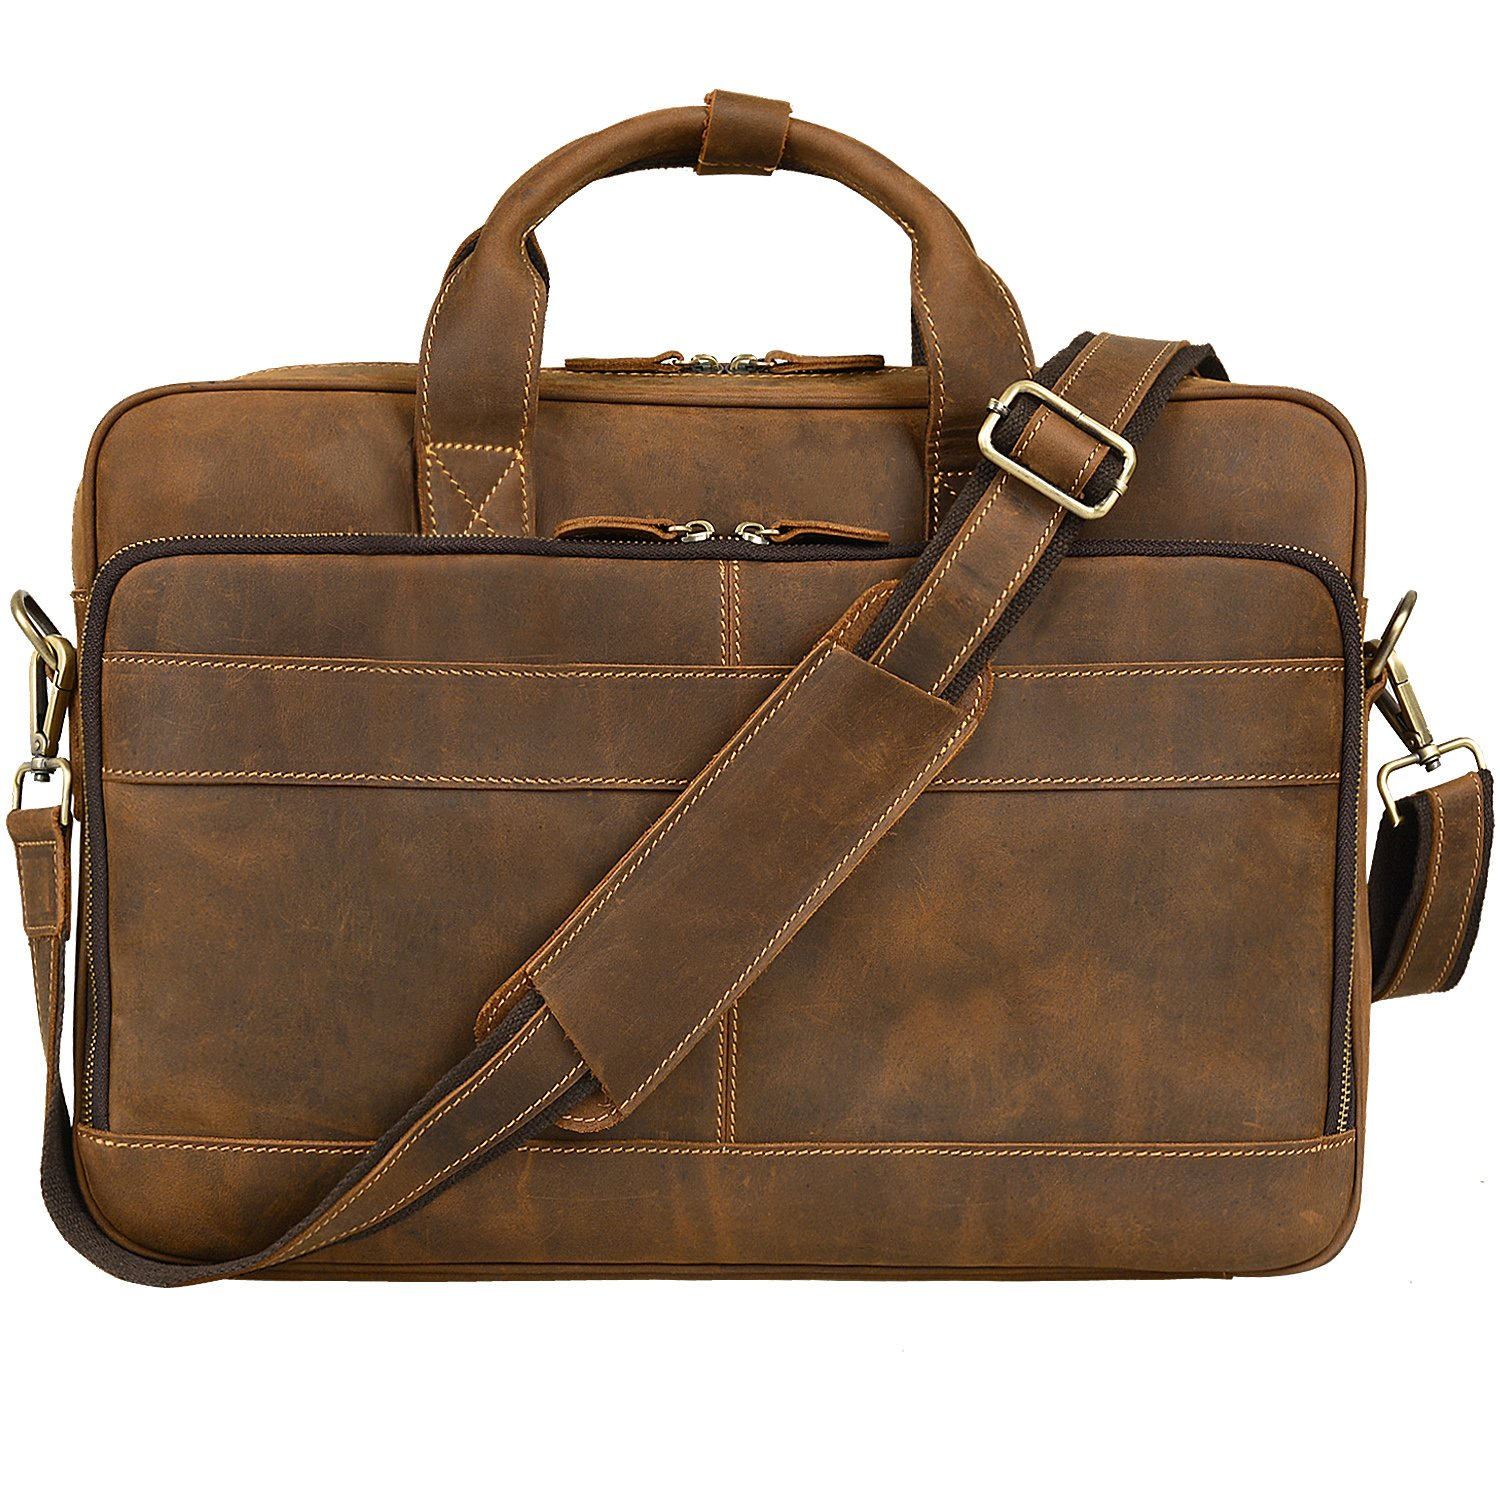 Jack&Chris Men's Genuine Leather Briefcase Messenger Bag Attache Case 15.6'' Laptop, MB005B by Jack&Chris